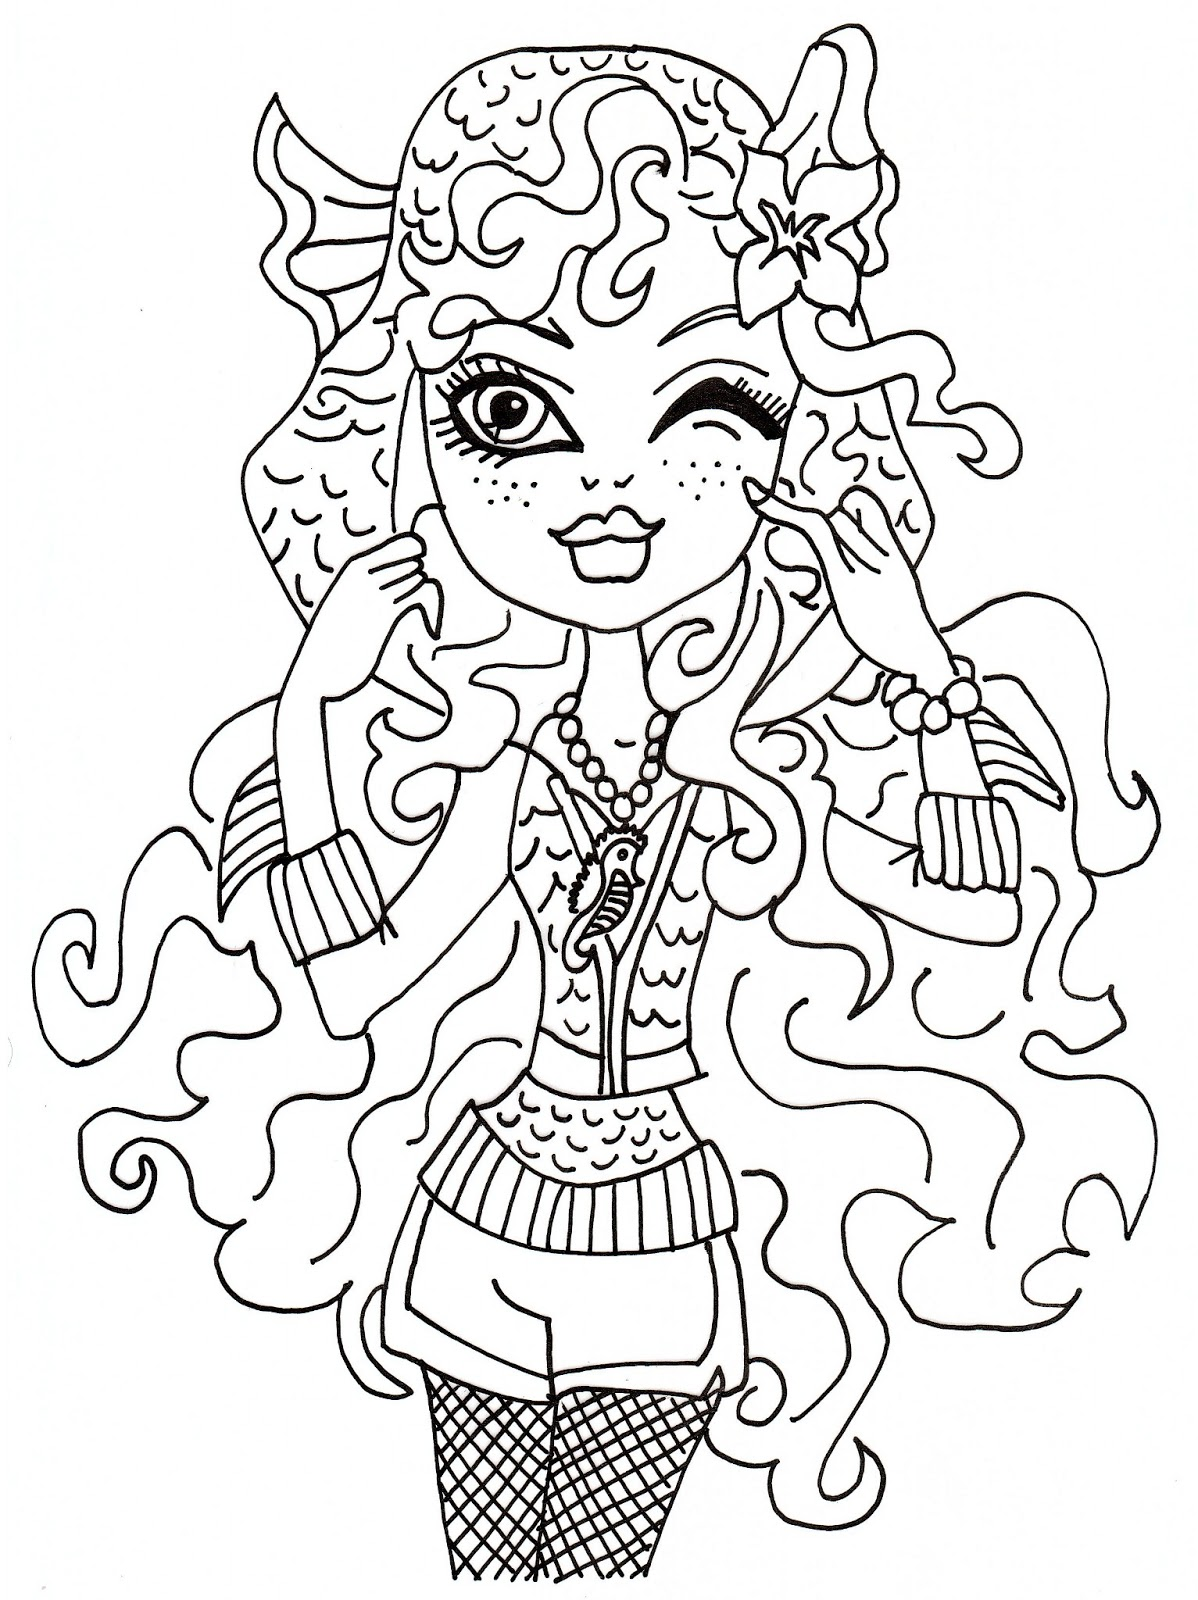 free printable monster high coloring pages may 2013